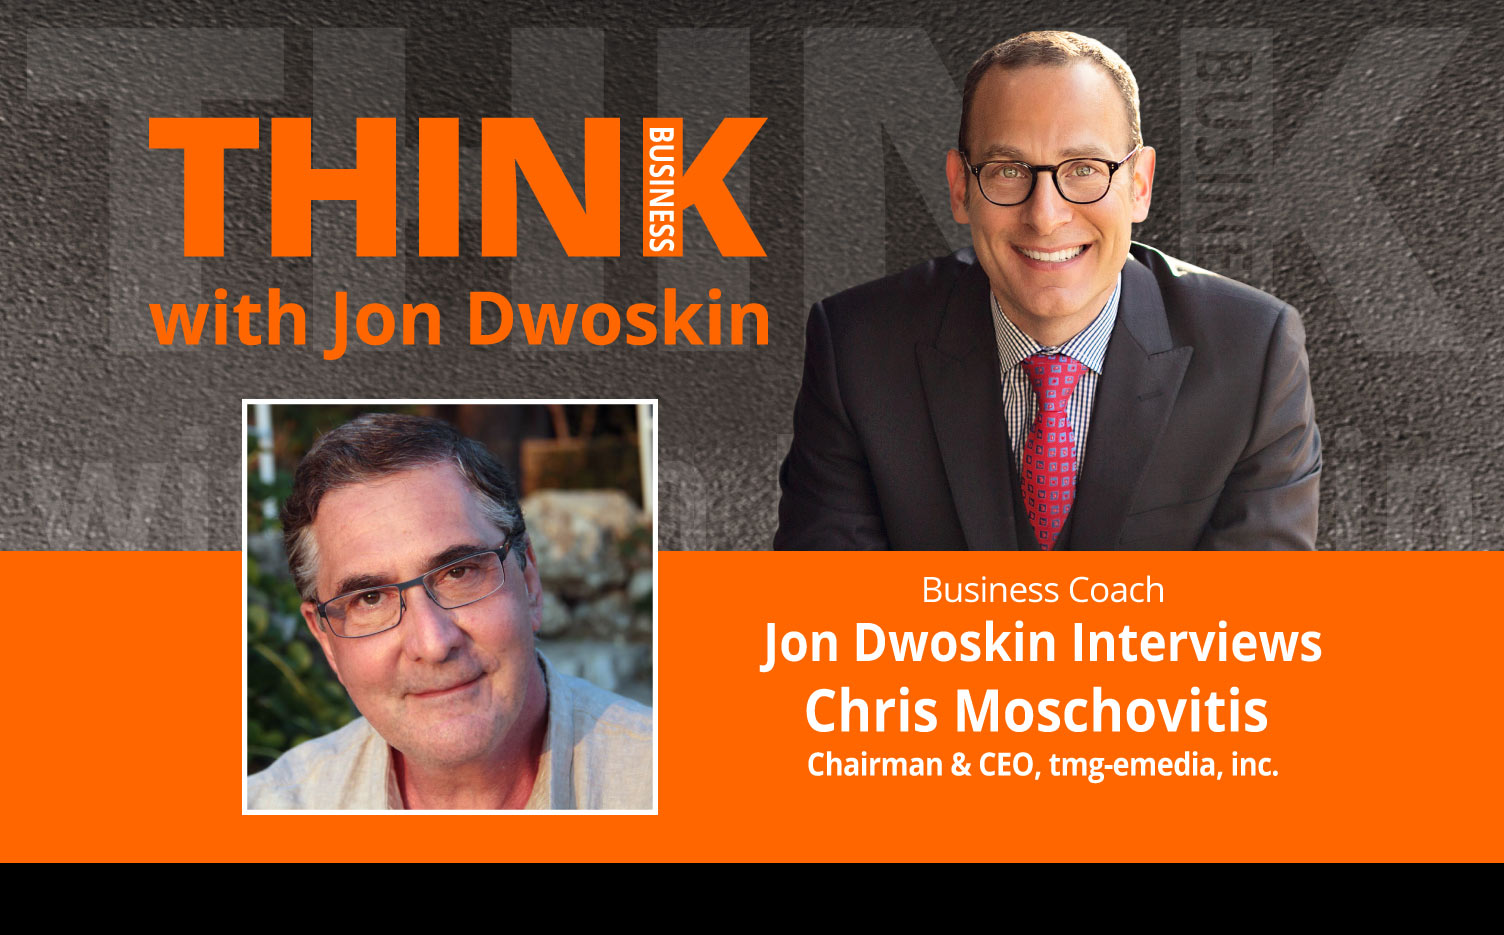 THINK Business Podcast: Jon Dwoskin Interviews Chris Moschovitis, Chairman & CEO, tmg-emedia, inc.